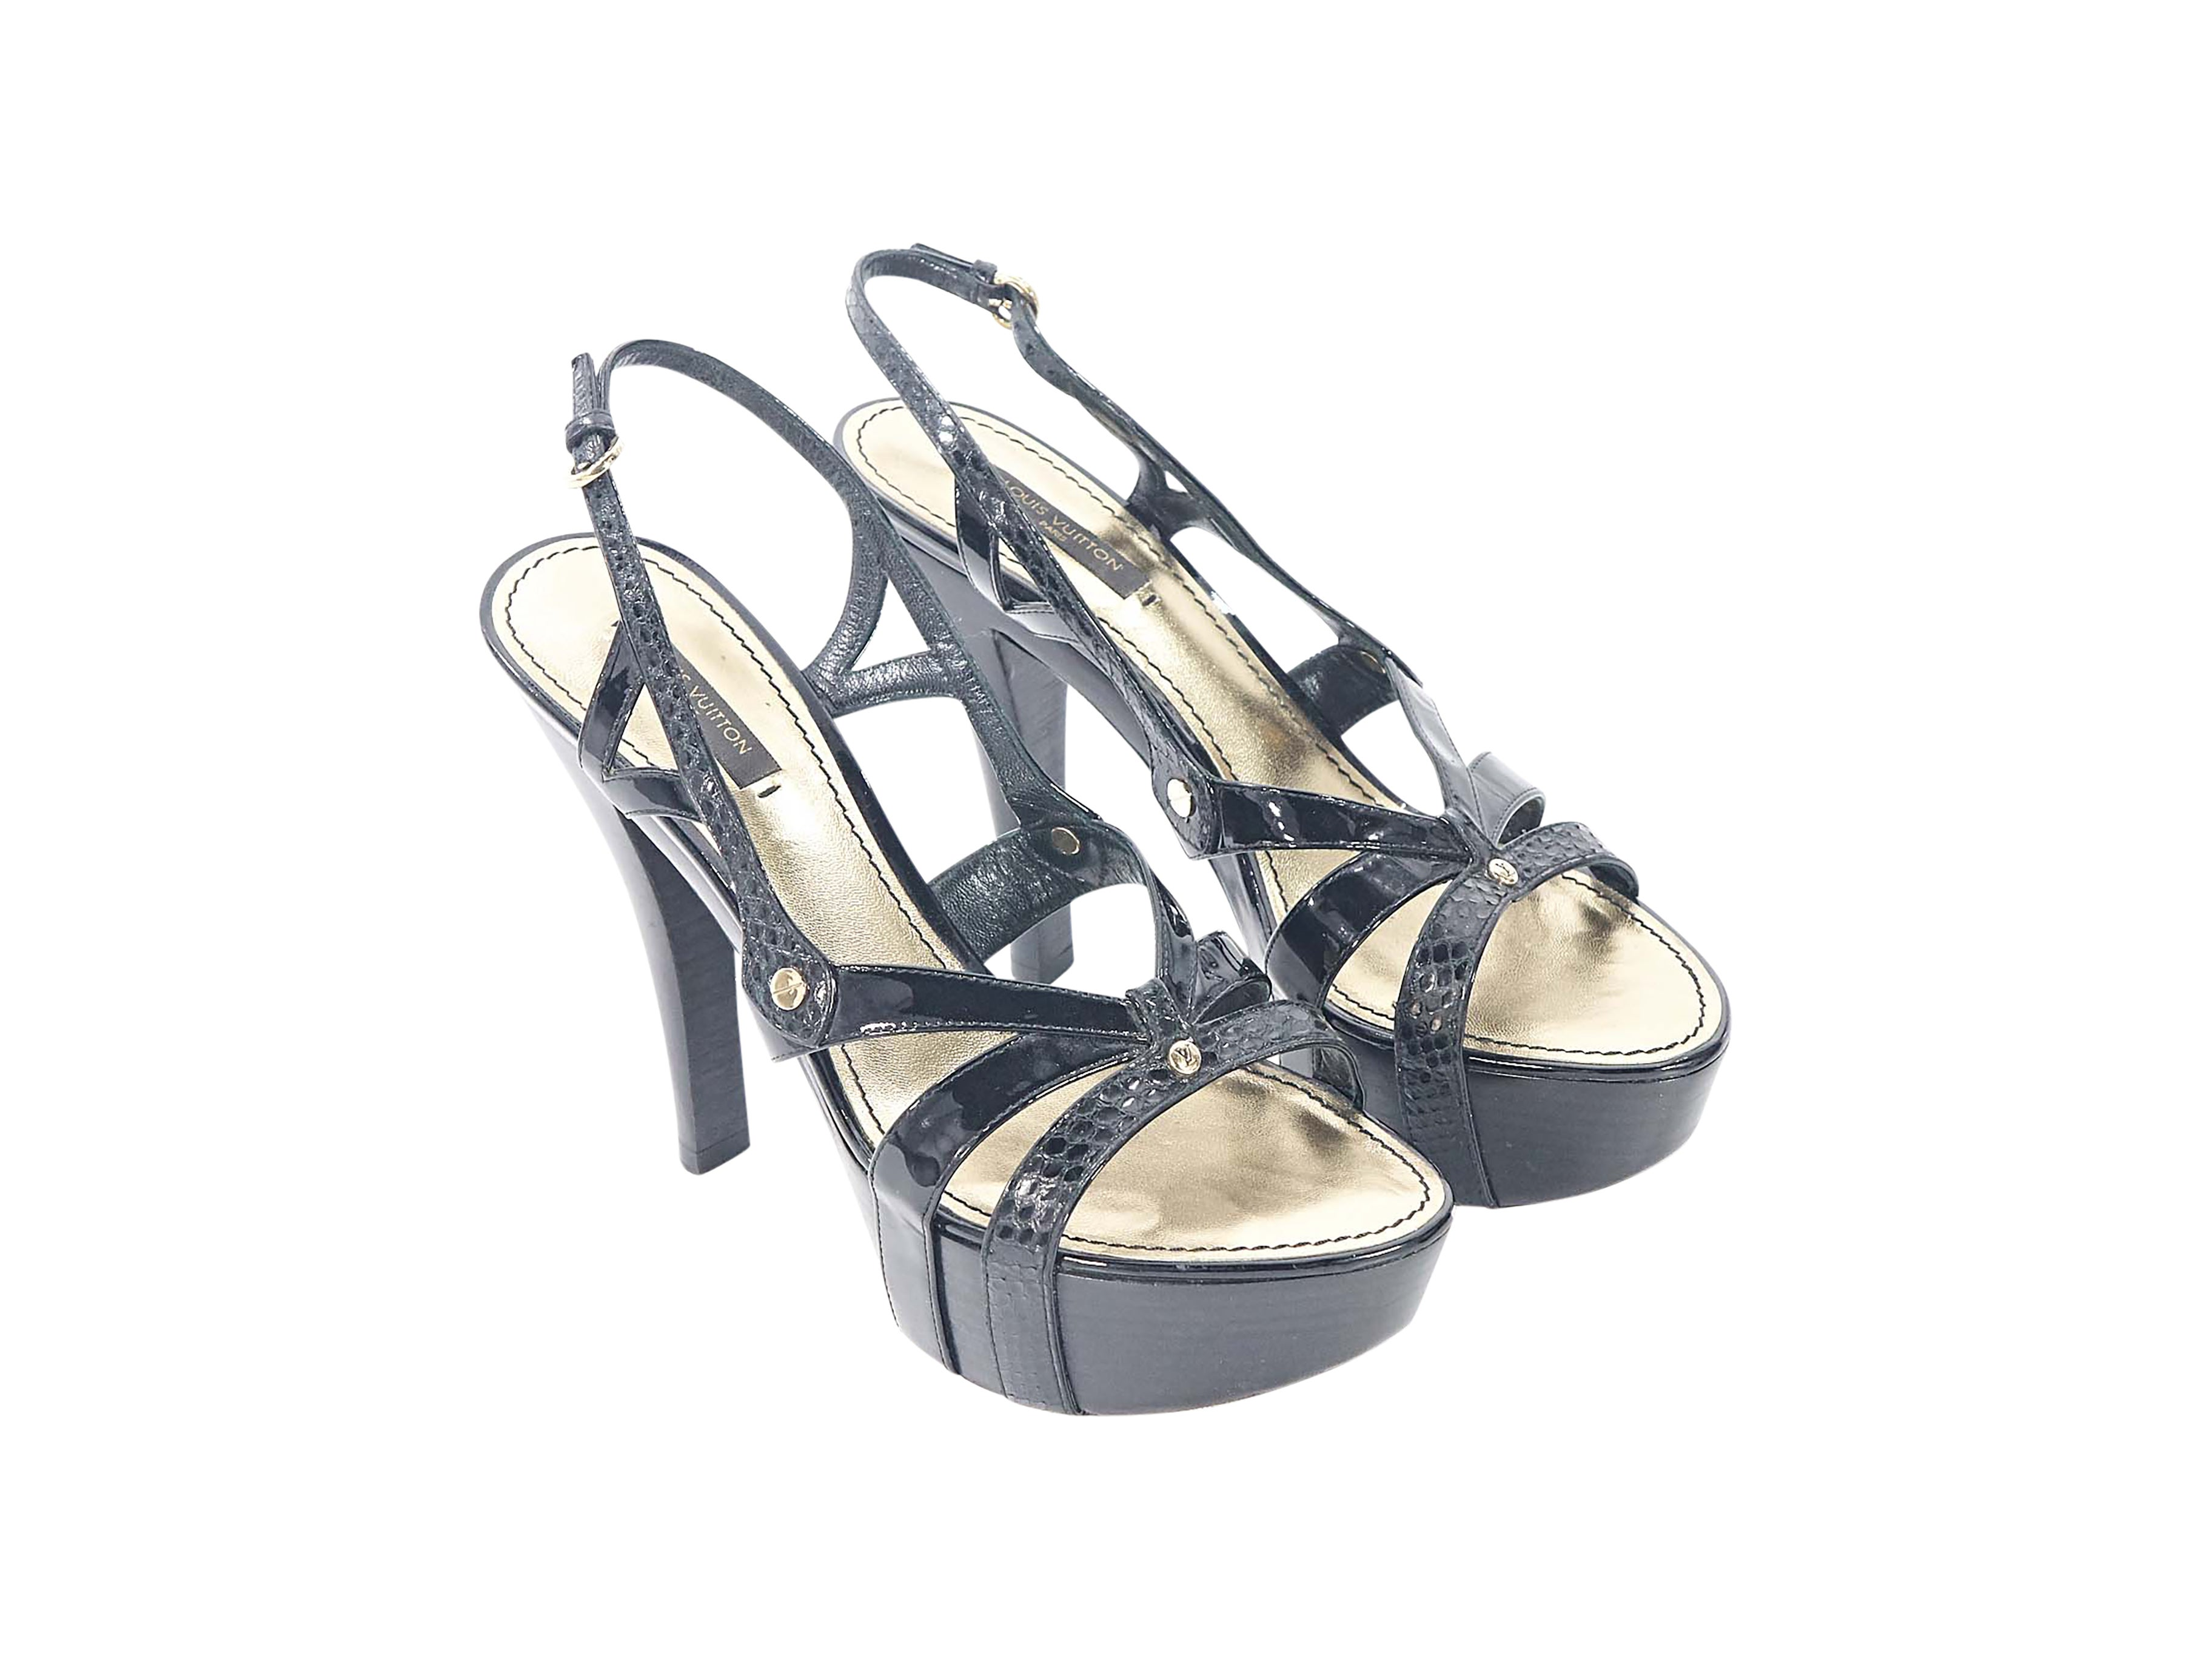 135733aac1ec Black Louis Vuitton Leather Platform Sandals For Sale at 1stdibs